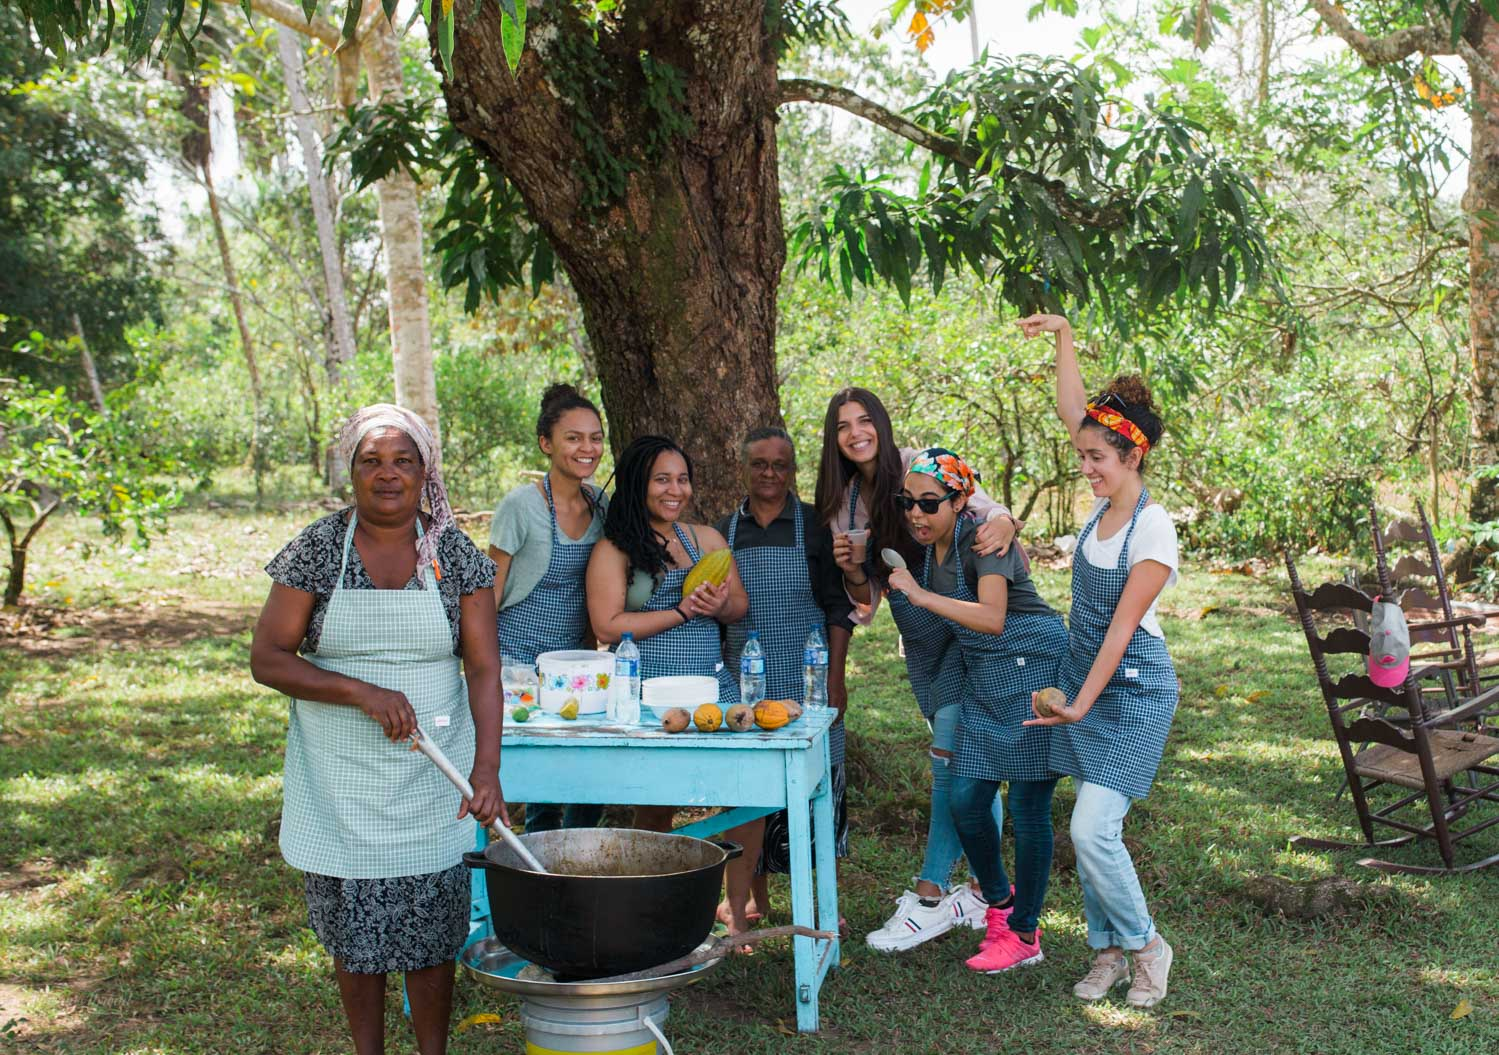 Excited students learning how to cook authentic Dominican food from my aunt Ramona in the rural farms of Monte Plata.